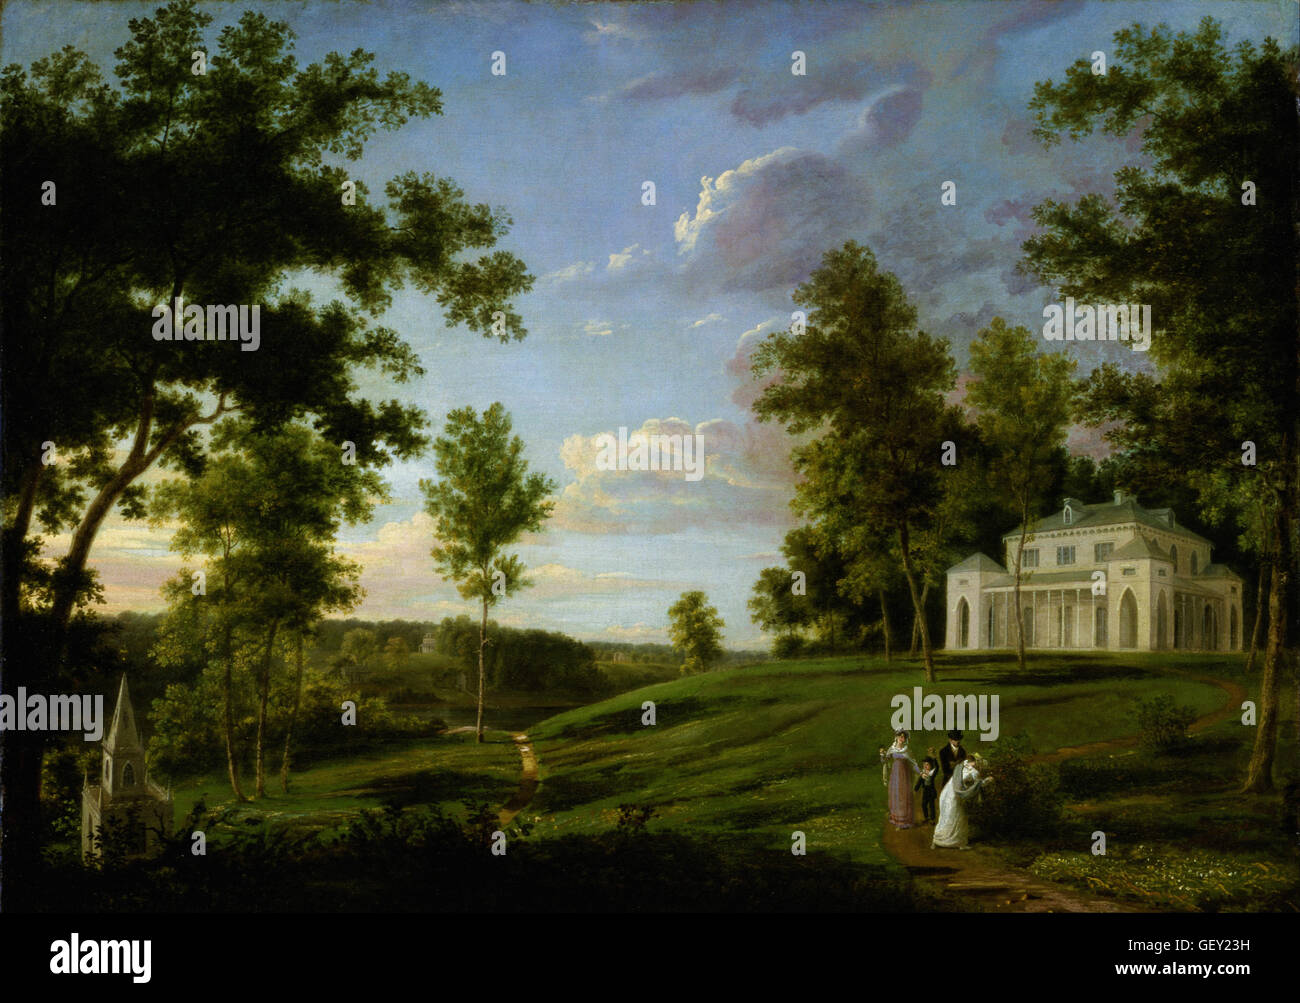 Thomas Birch - Southeast View of Sedgeley Park the Country Seat of James Cowles Fisher, Esq - Stock Image